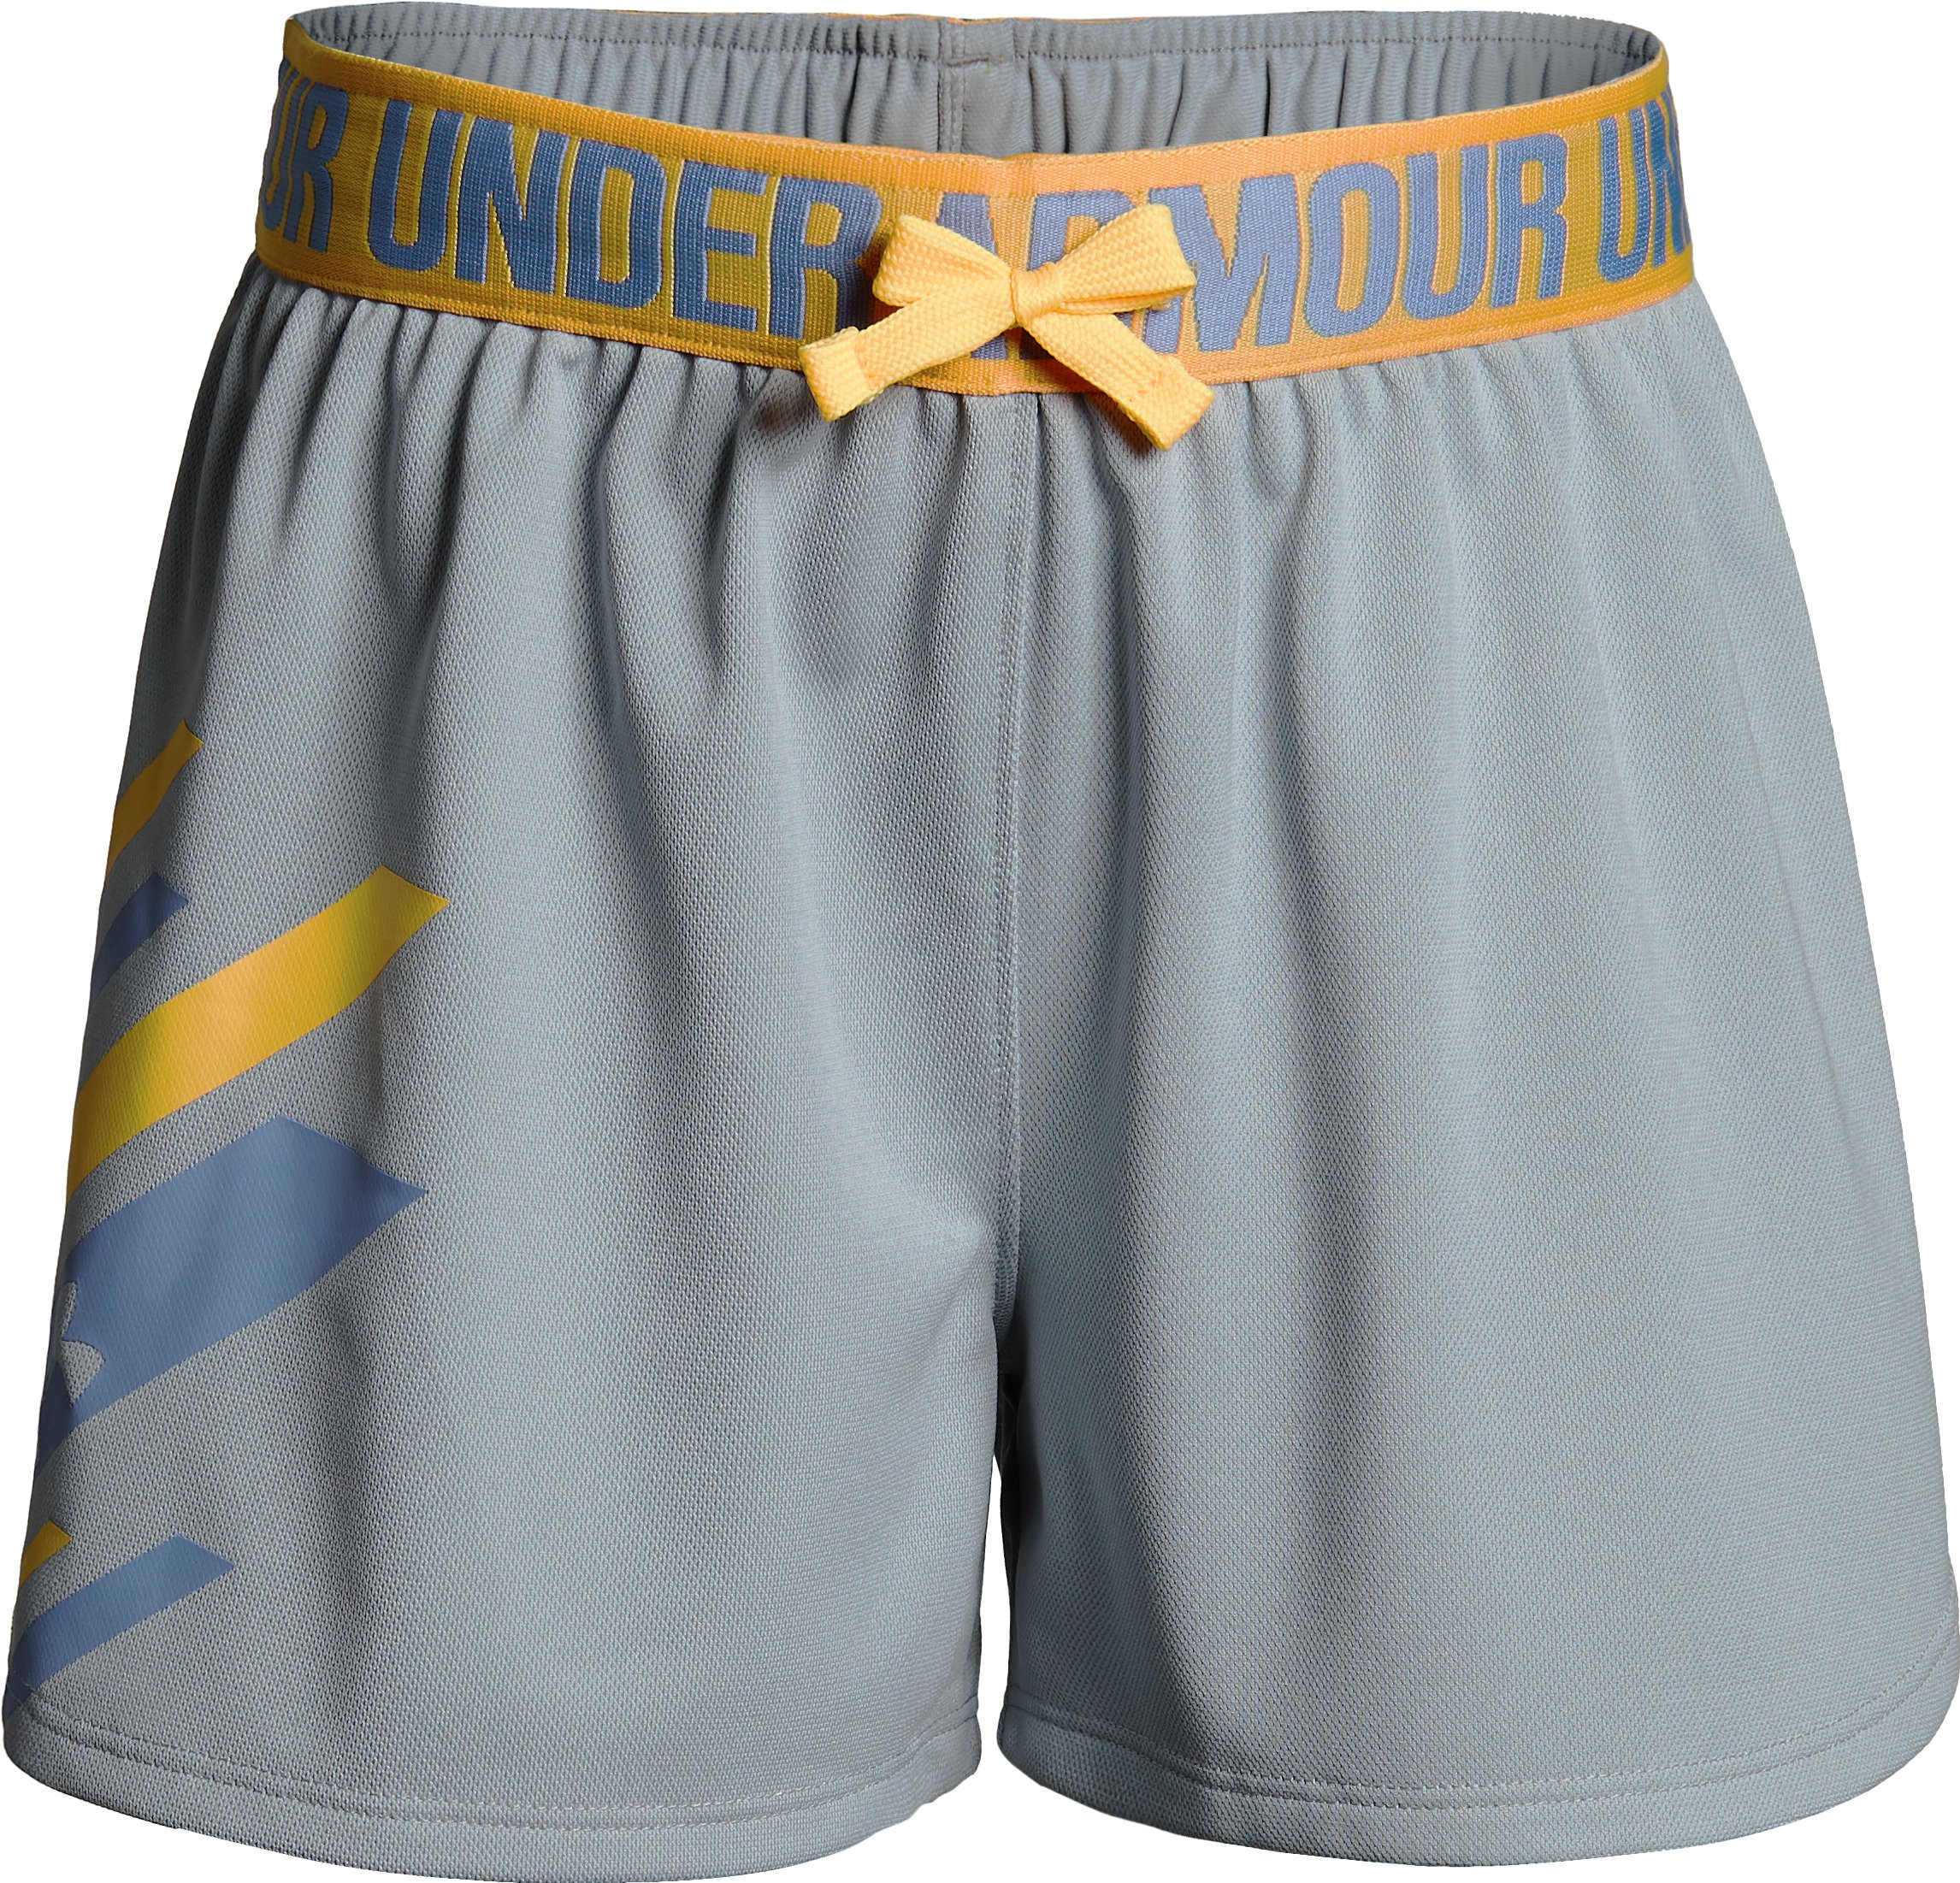 Girls' UA Play Up Graphic Shorts, OVERCAST GRAY LIGHT HEATHER